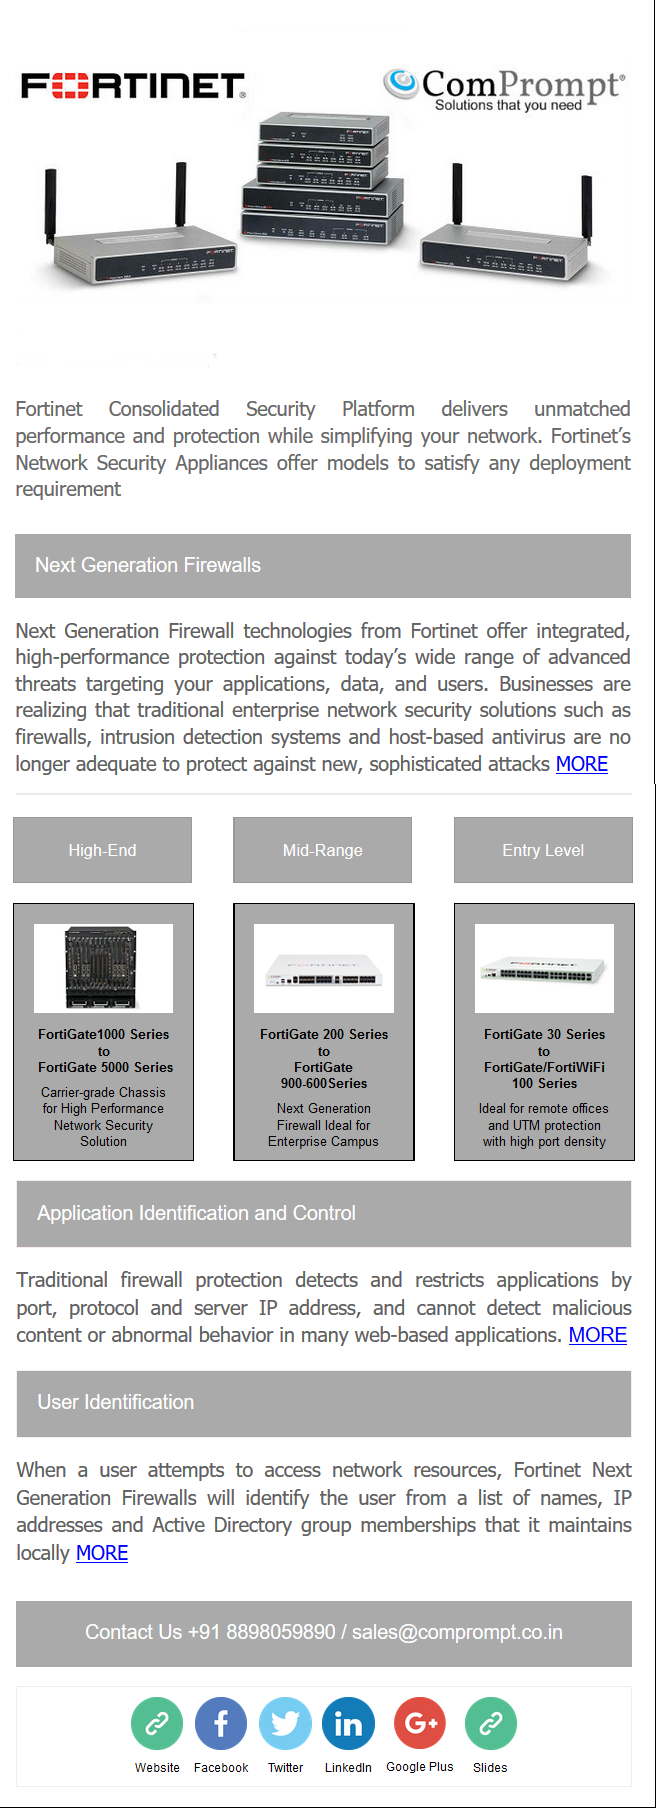 fortinet mailer